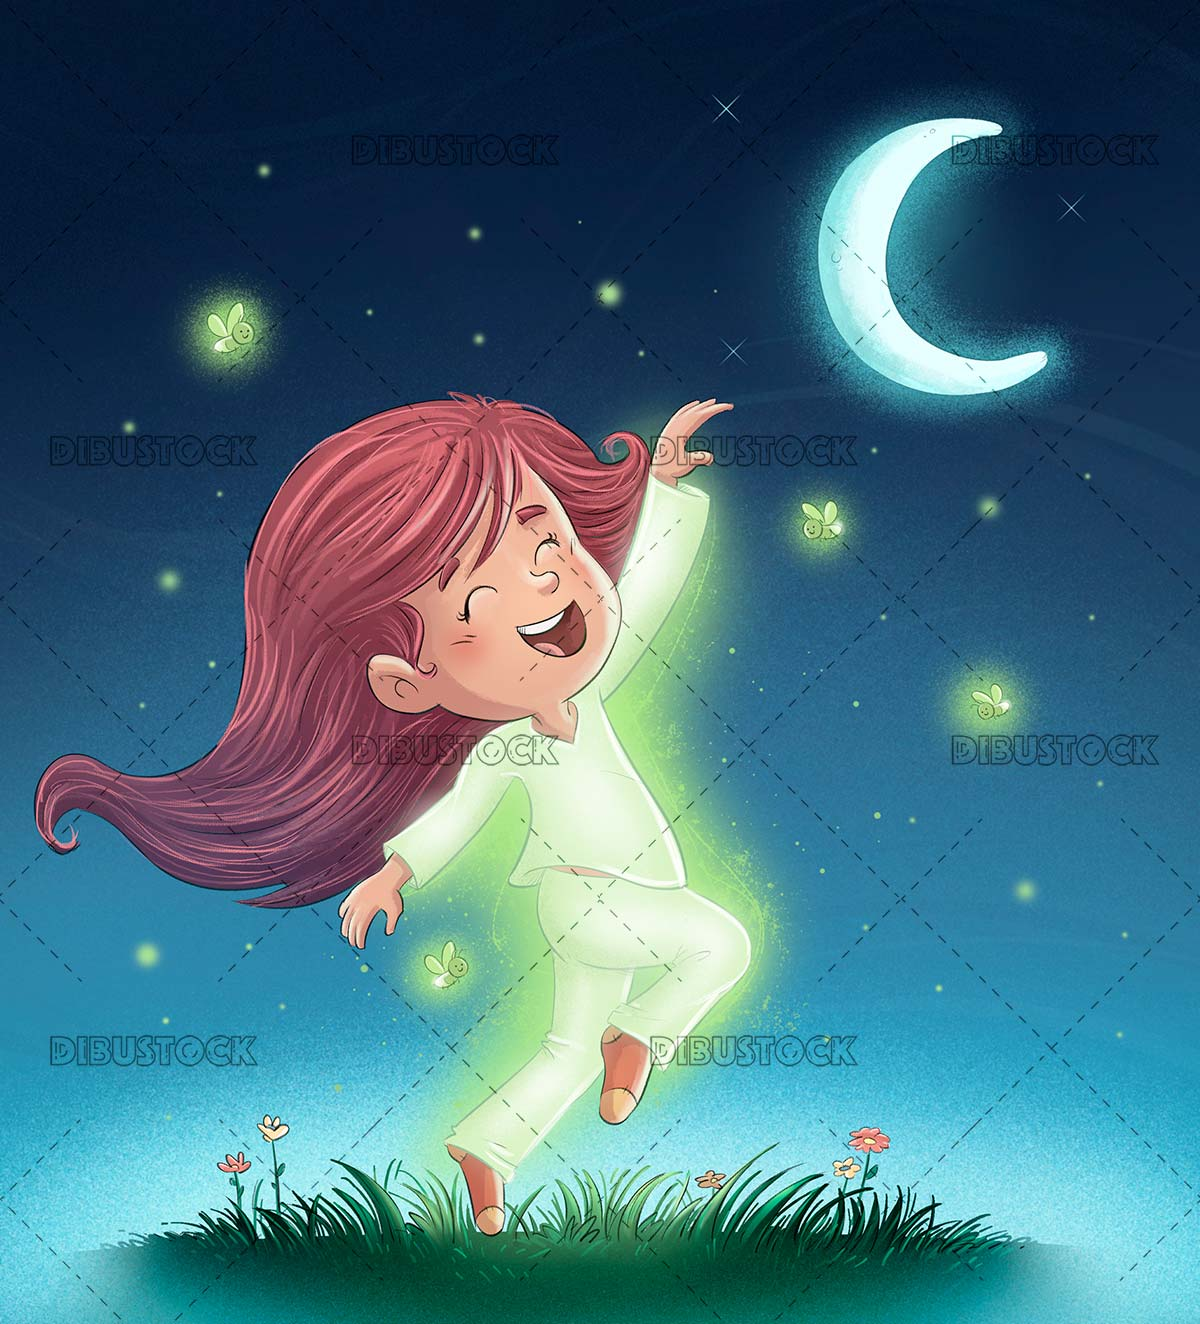 Girl dancing at night with fireflies